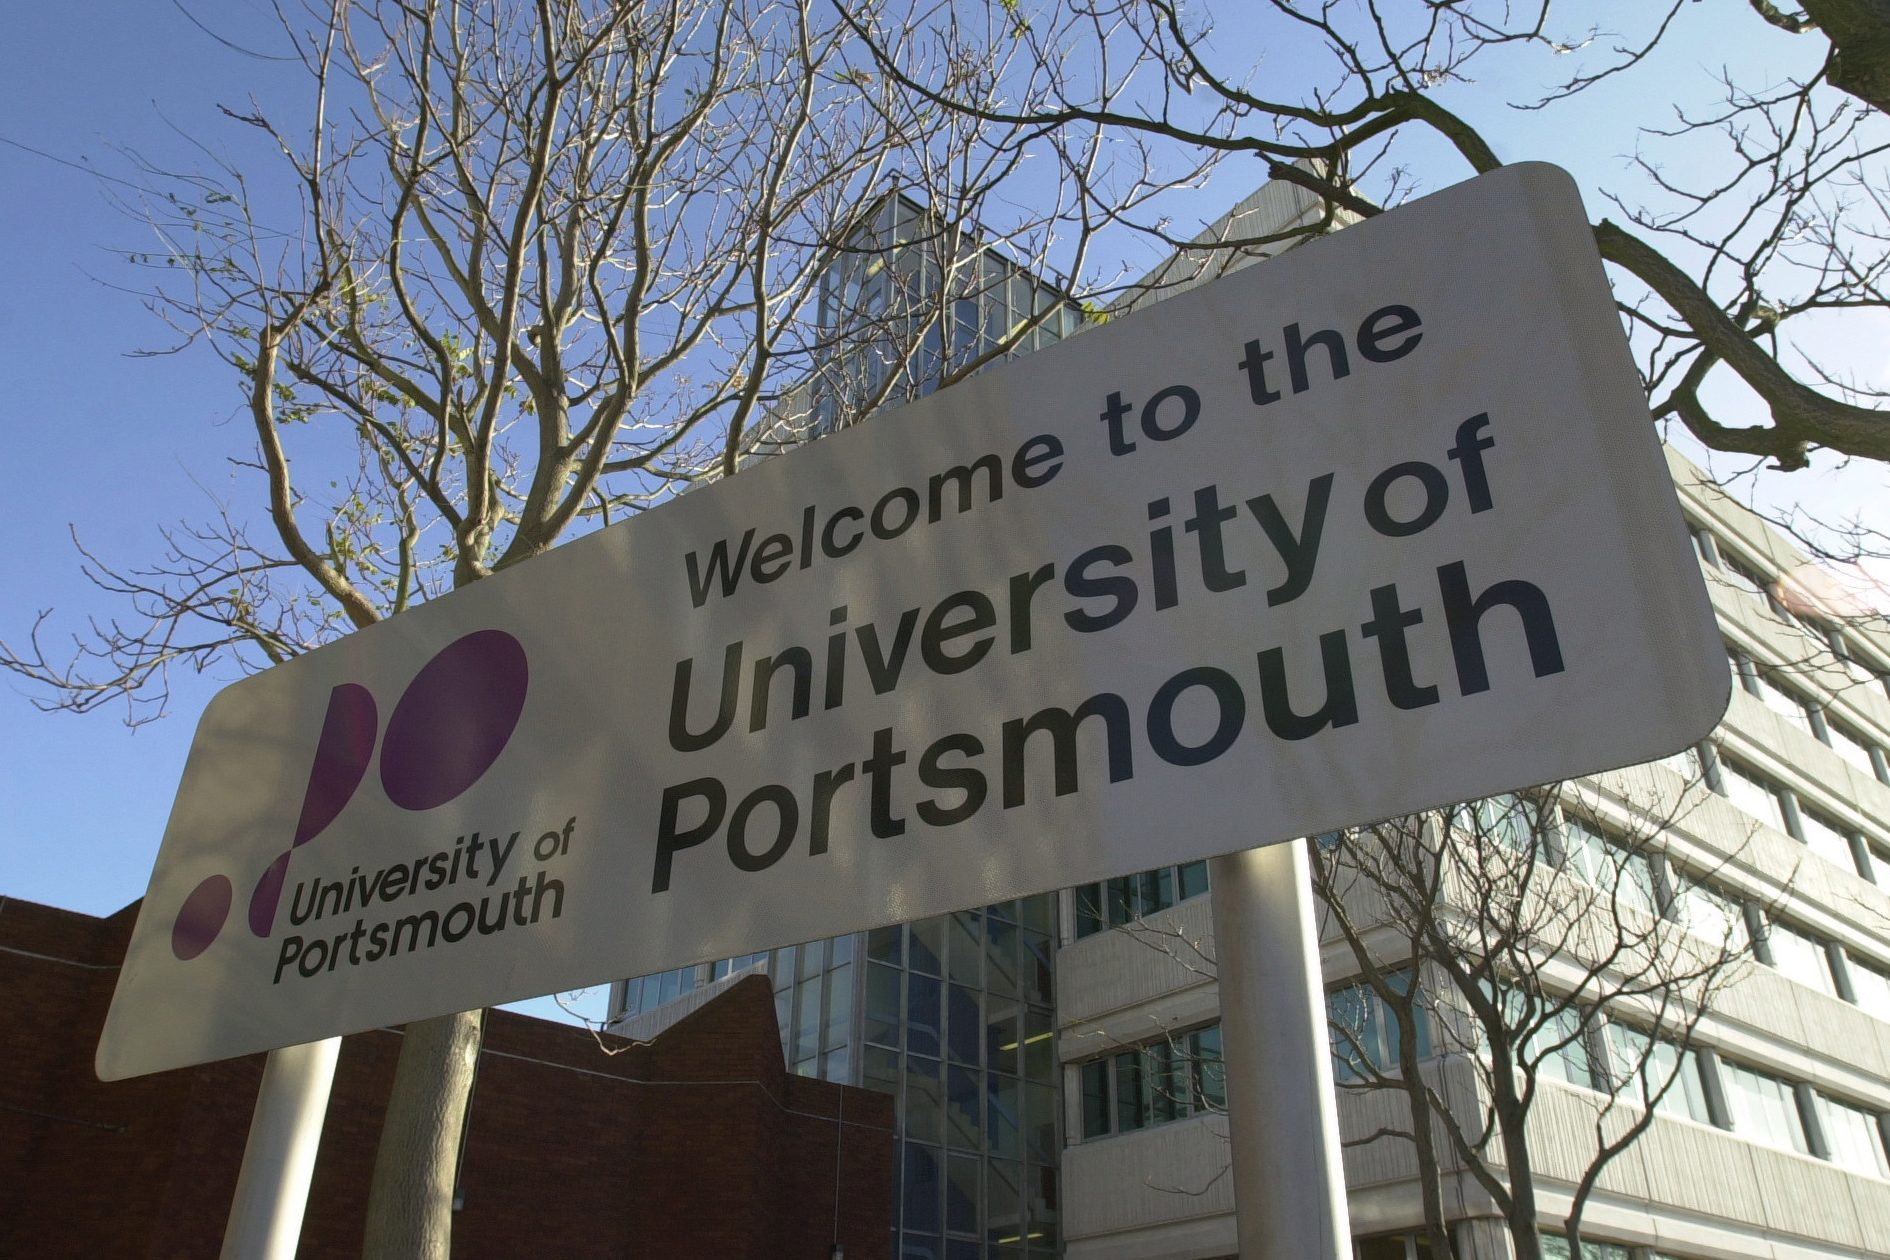 Press Release: LIBT Partners with University of Portsmouth